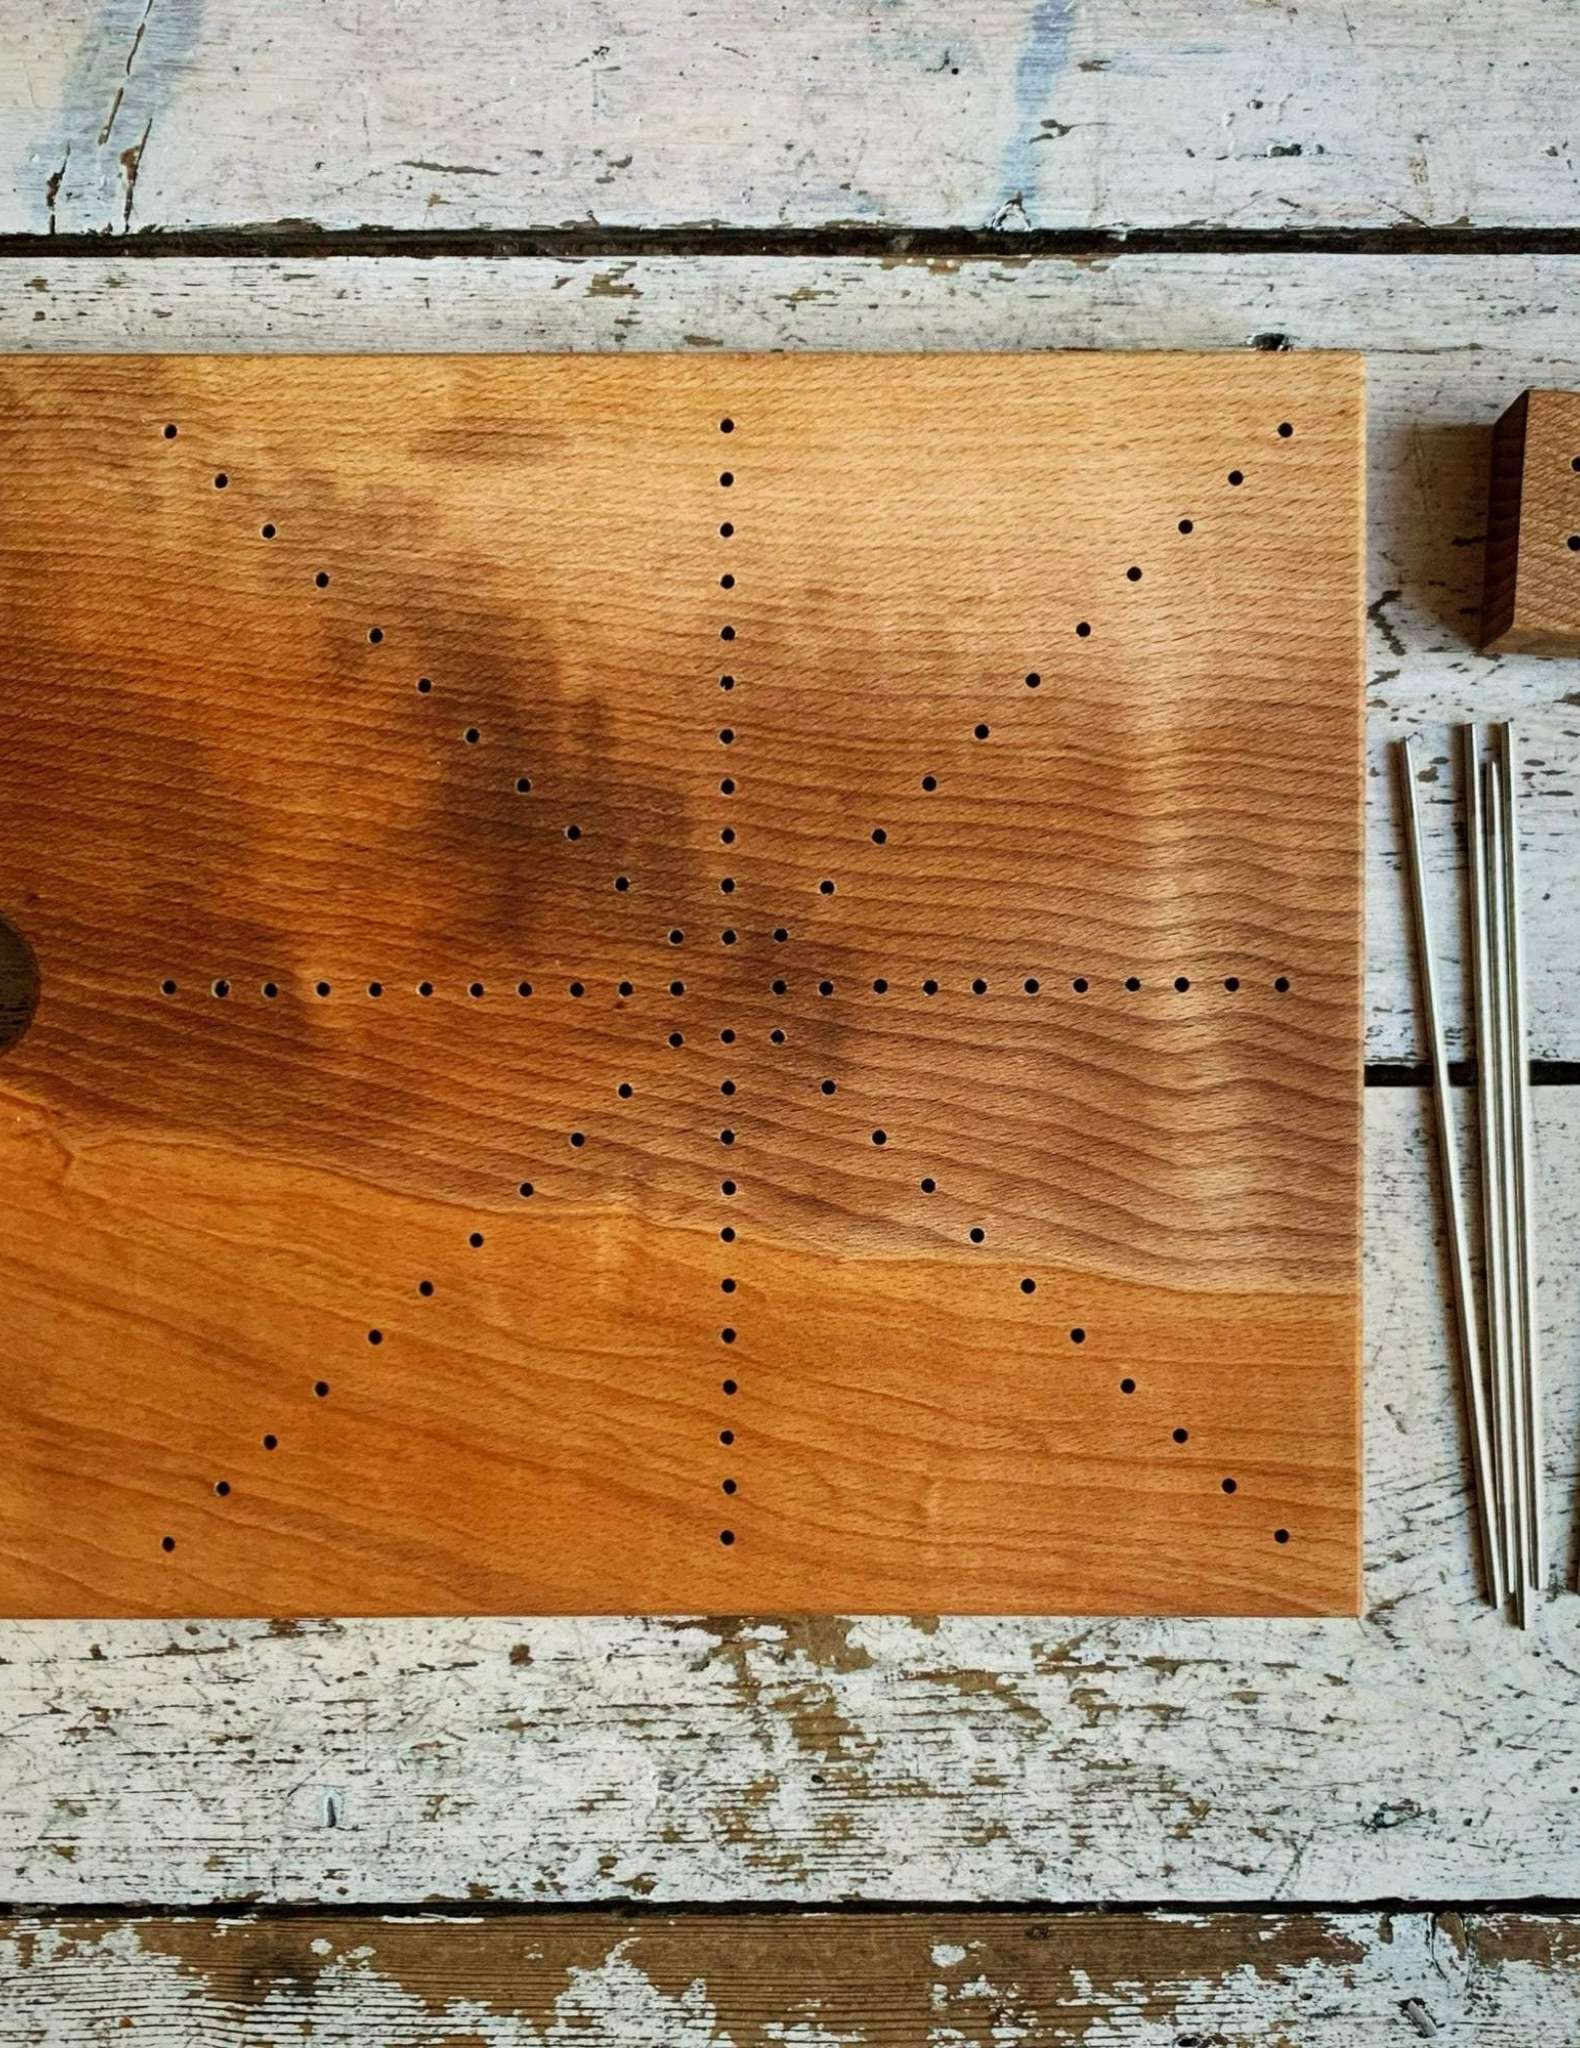 A wooden board marked with holes in diagonal lines over the surface, with blocking pins laying at the right side.